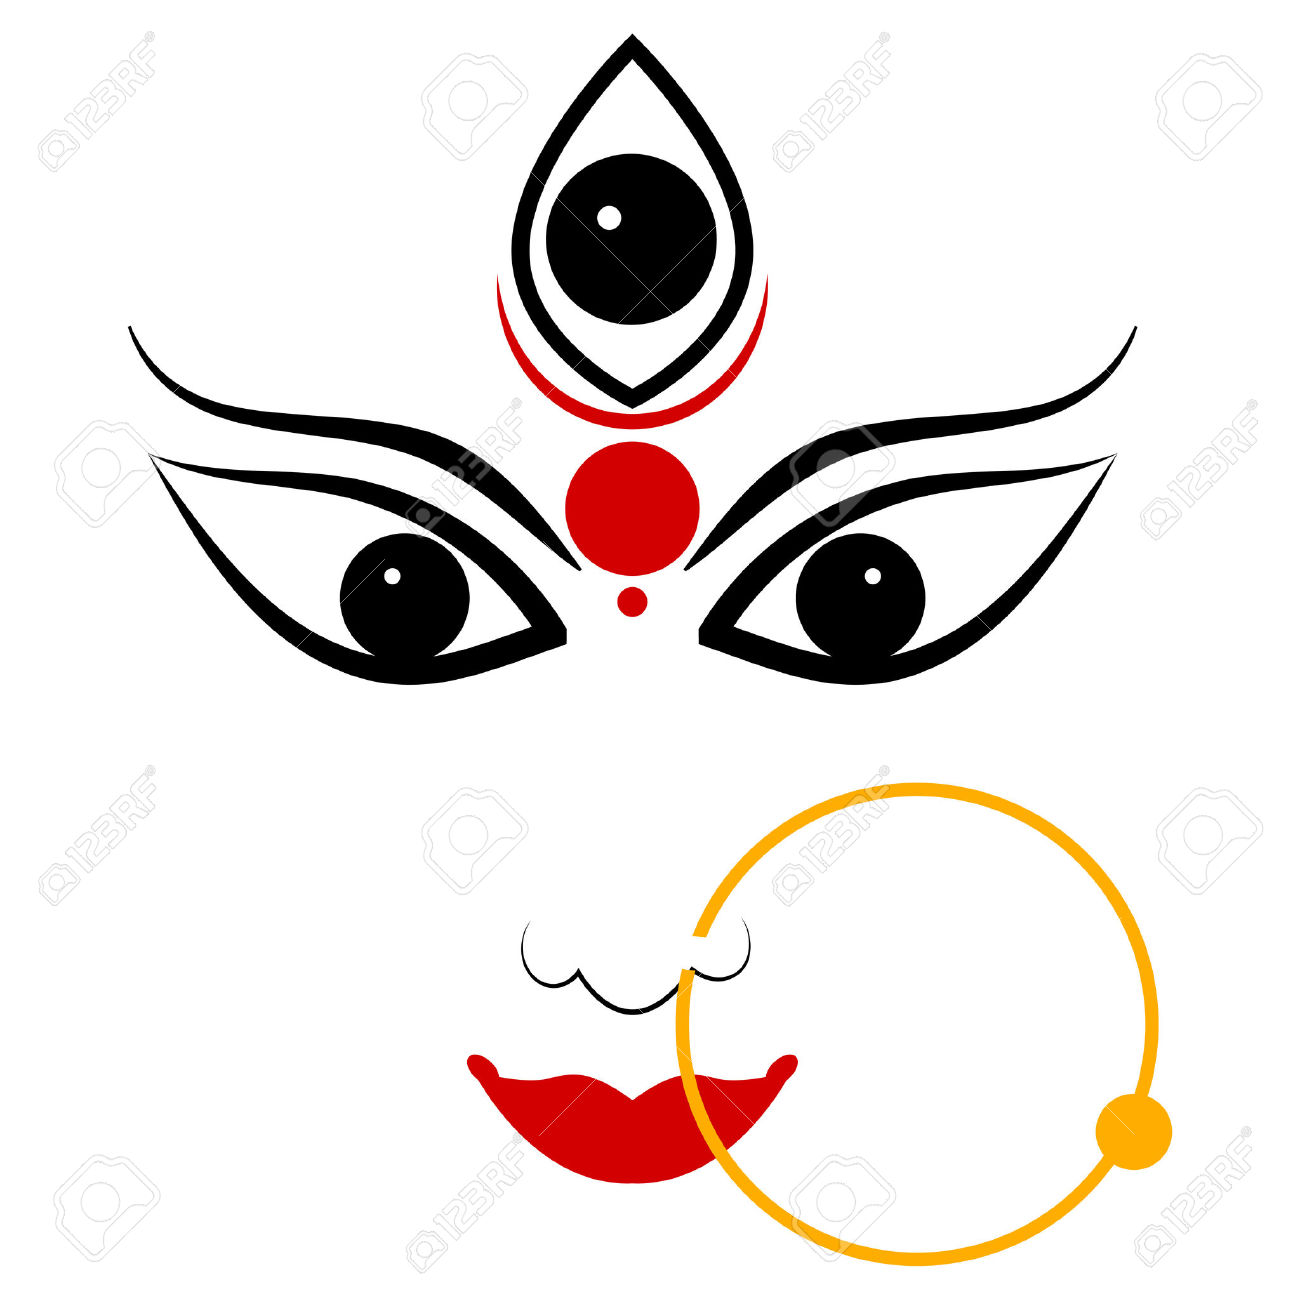 Durga face clipart 2 » Clipart Station.